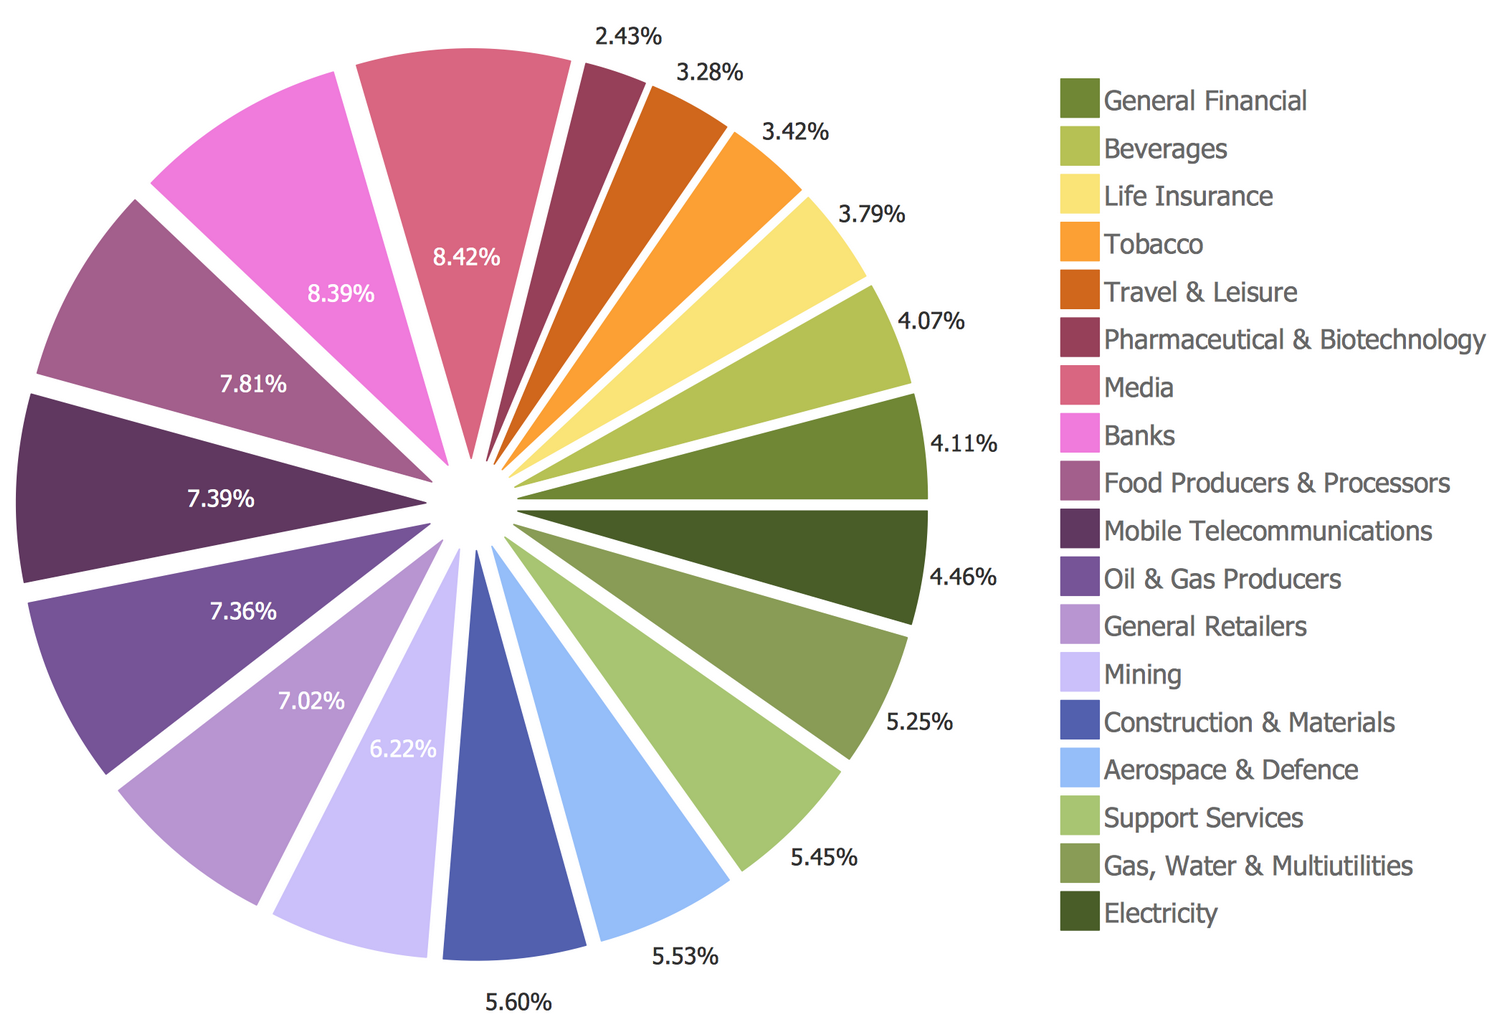 Basic Pie Chart — Sector Weightings